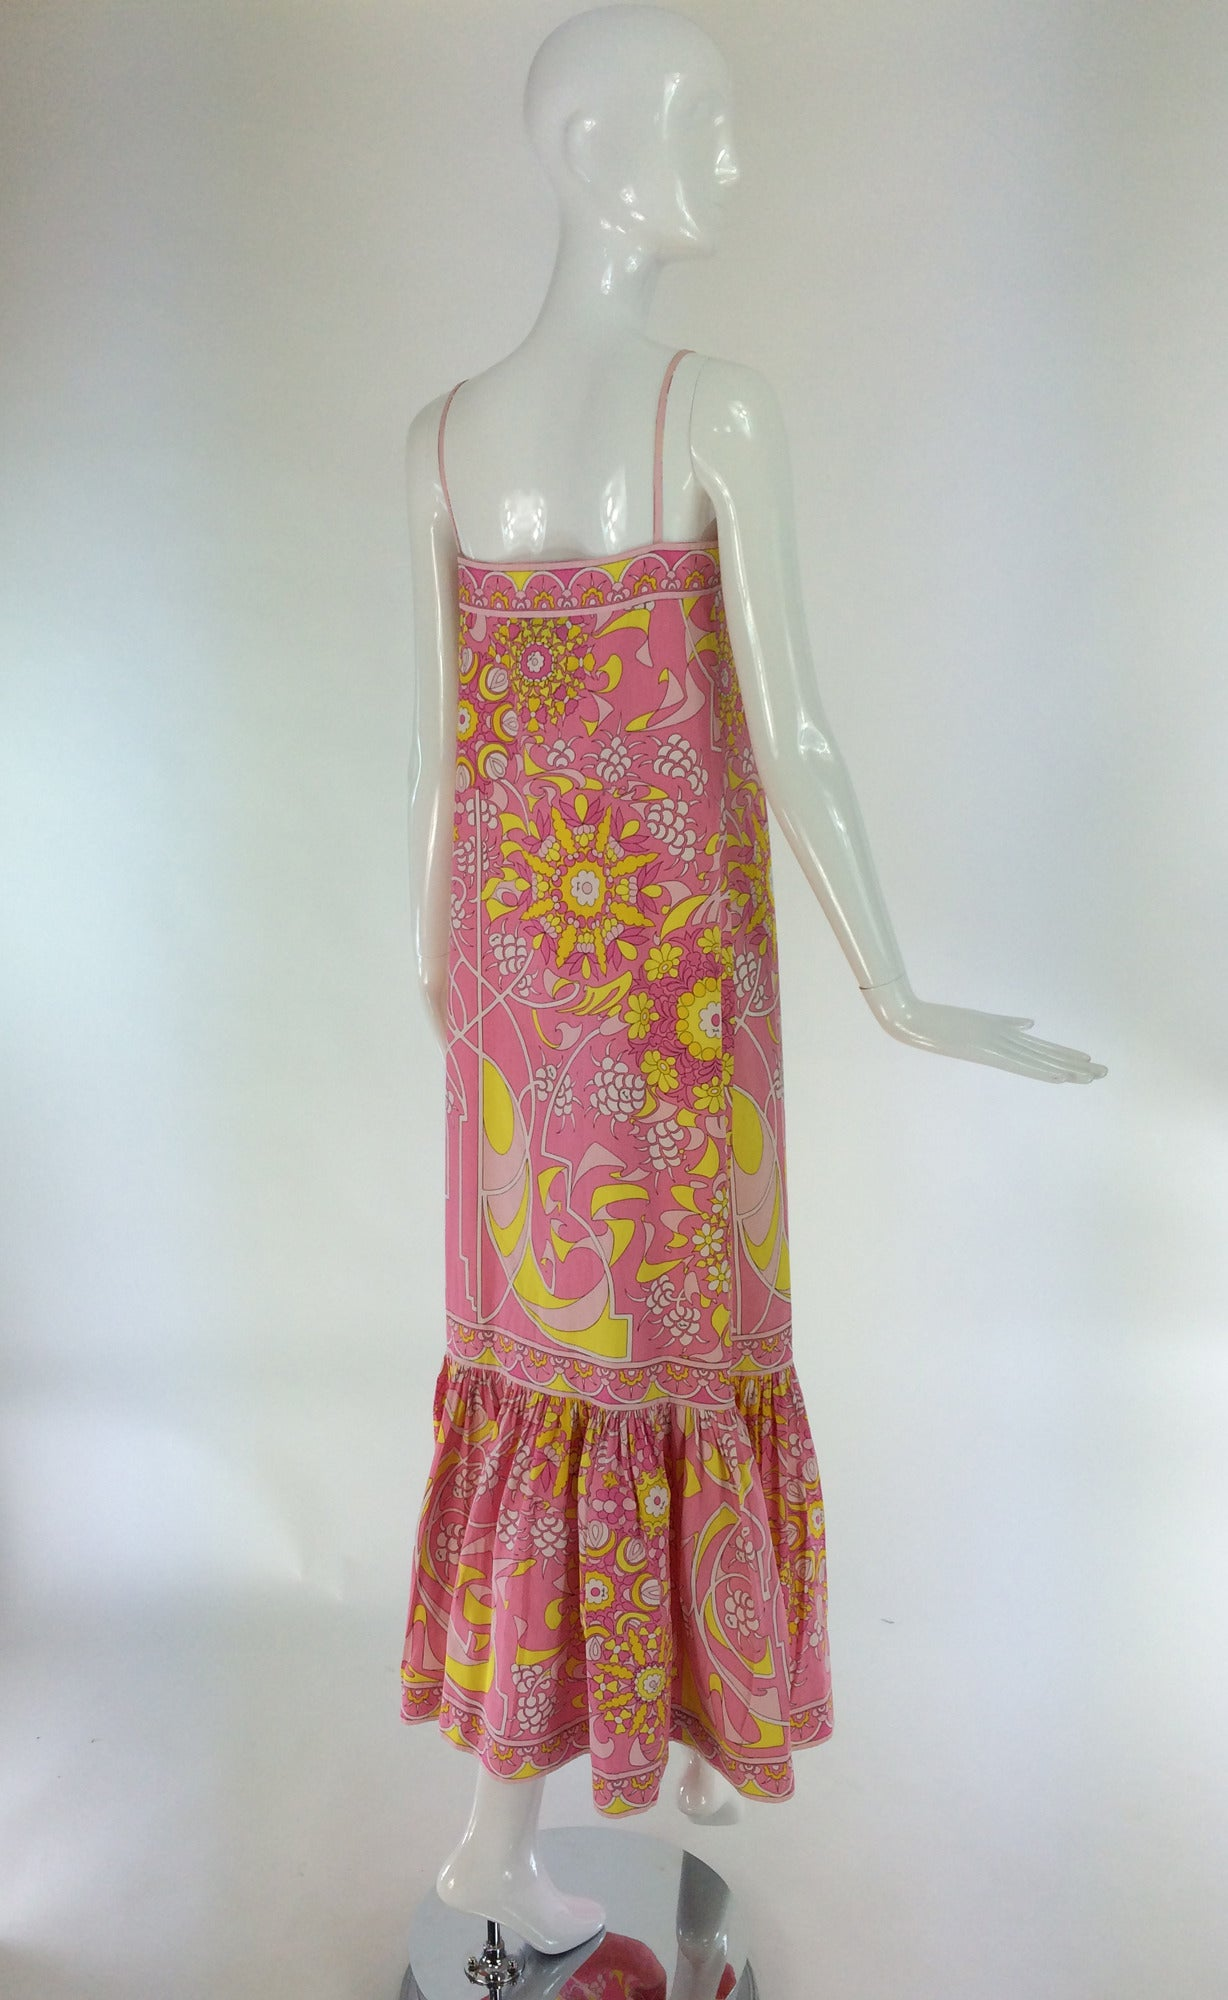 Emilio Pucci printed cotton maxi dress out of the ordinary design 1960s 6